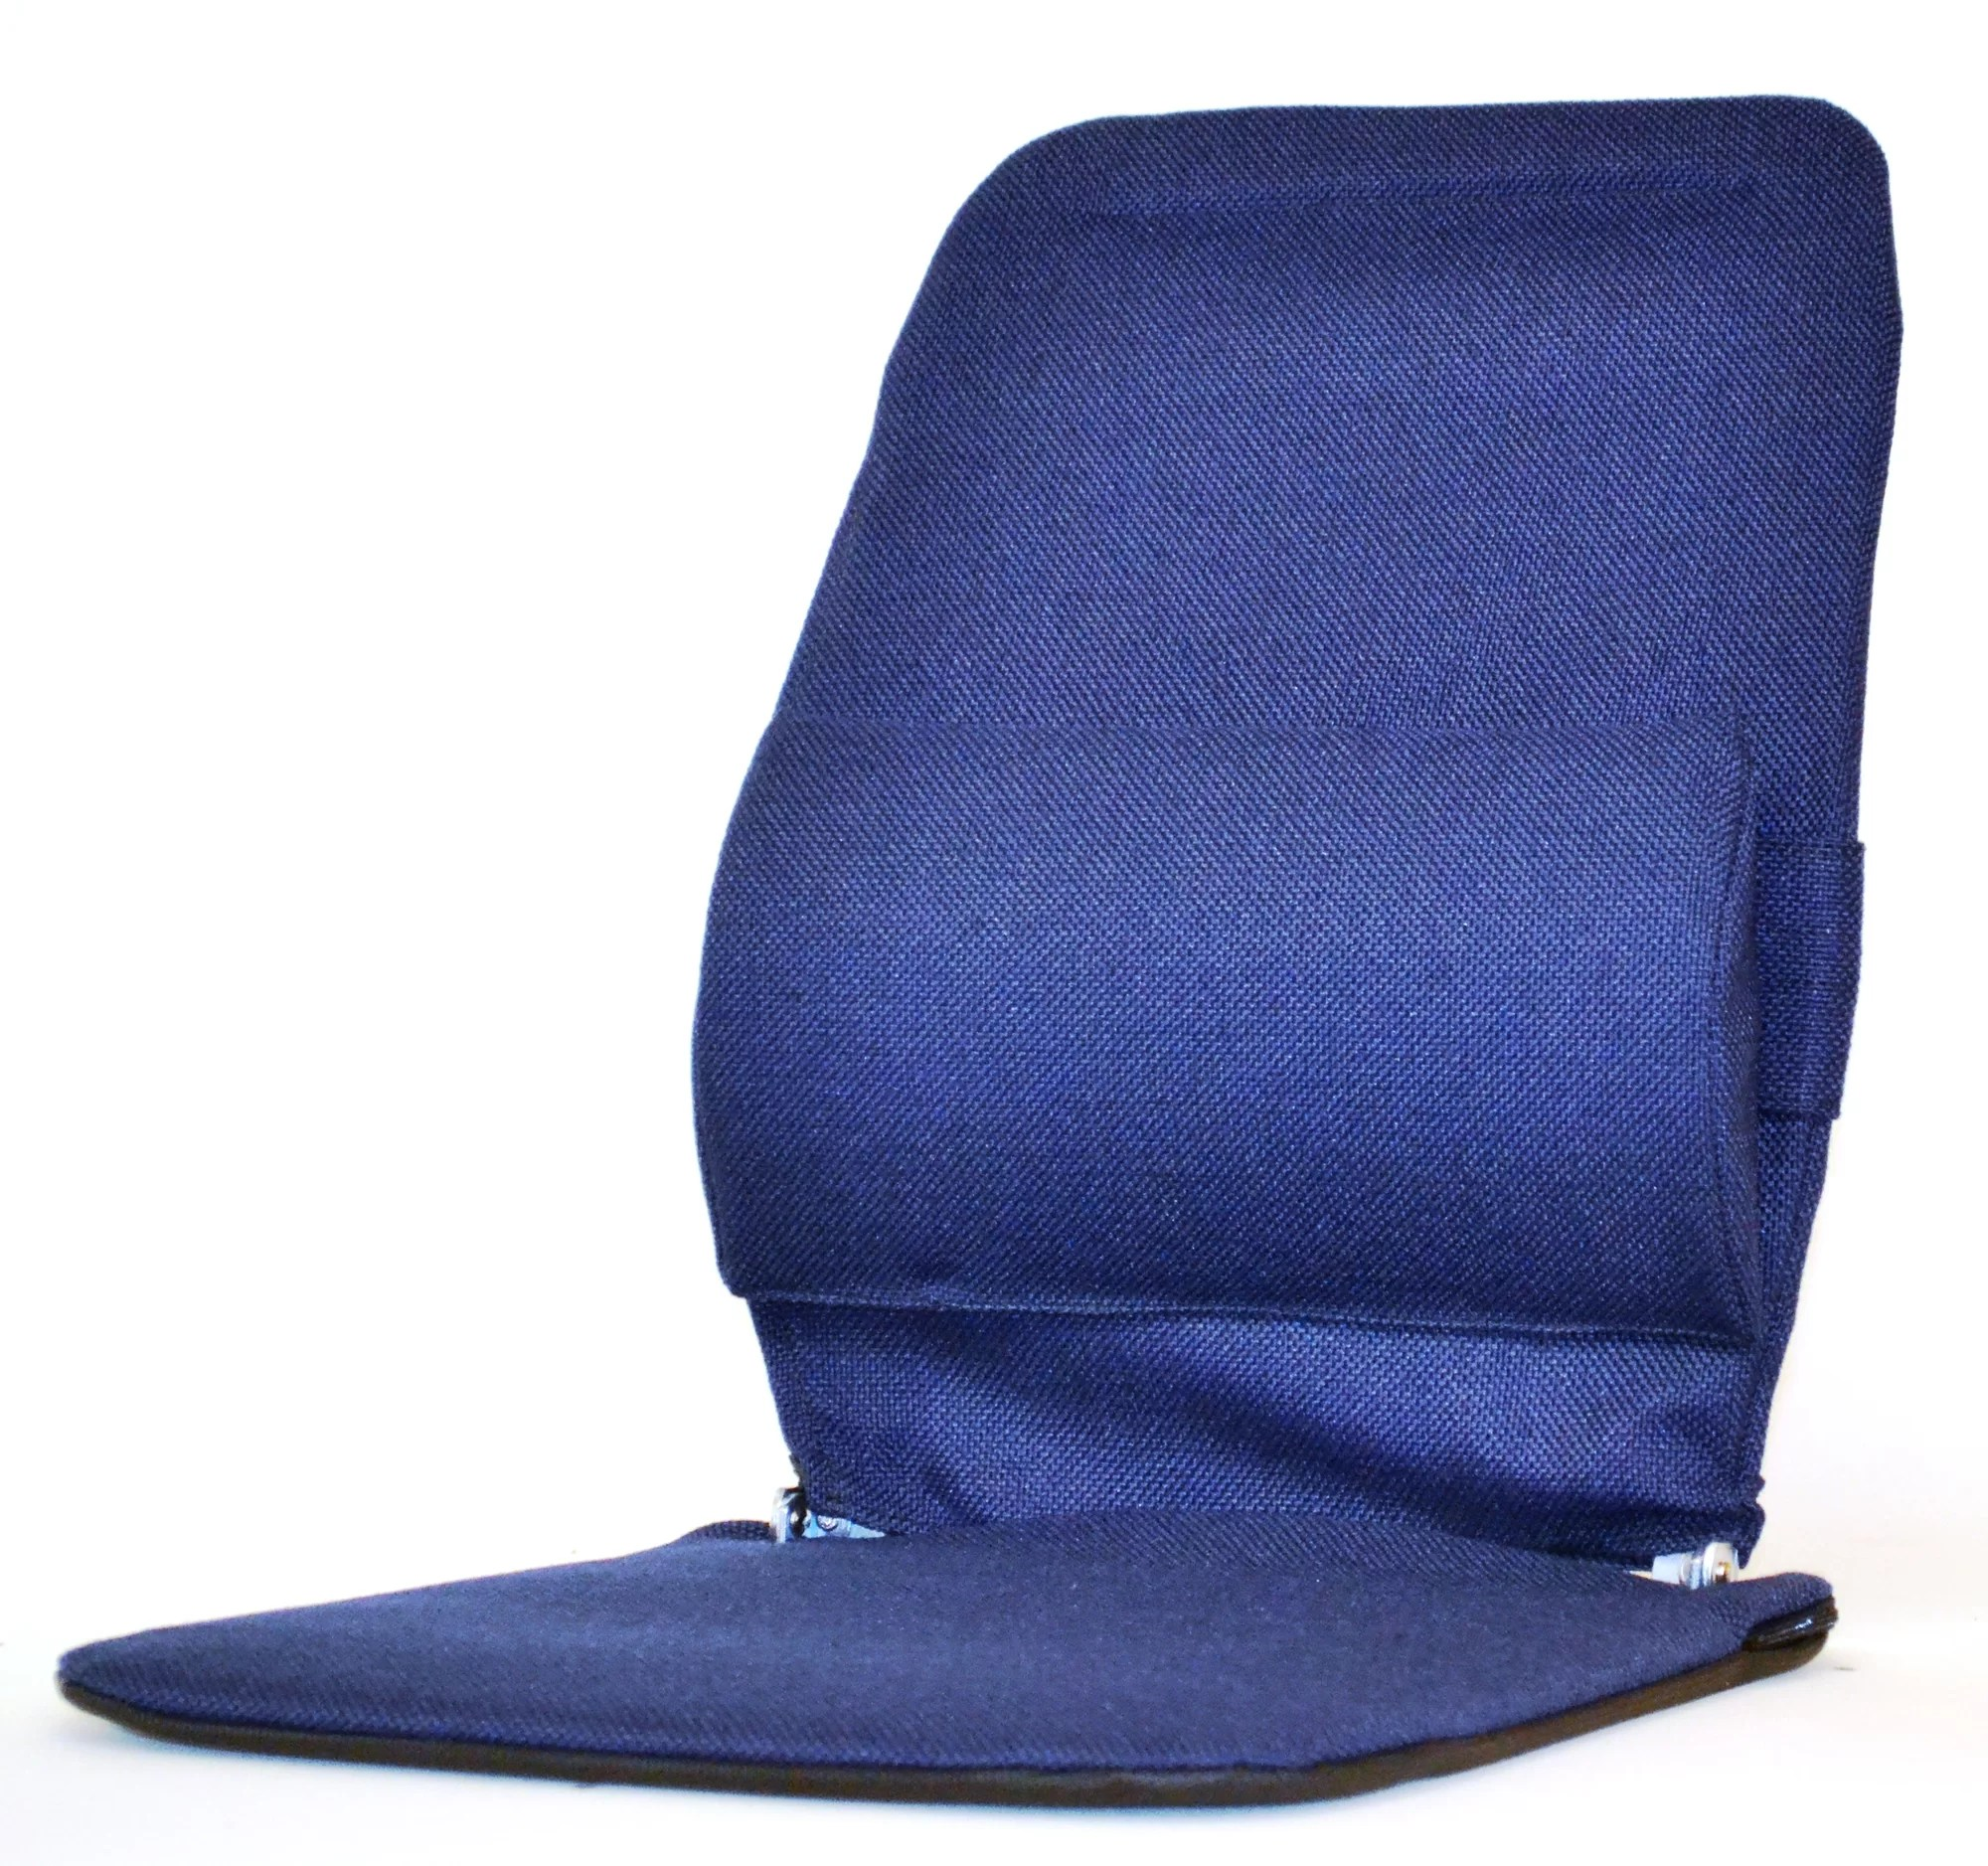 portable back support for chair lounge chairs outdoor target sacro ease seat cushion with adjustable lumbar